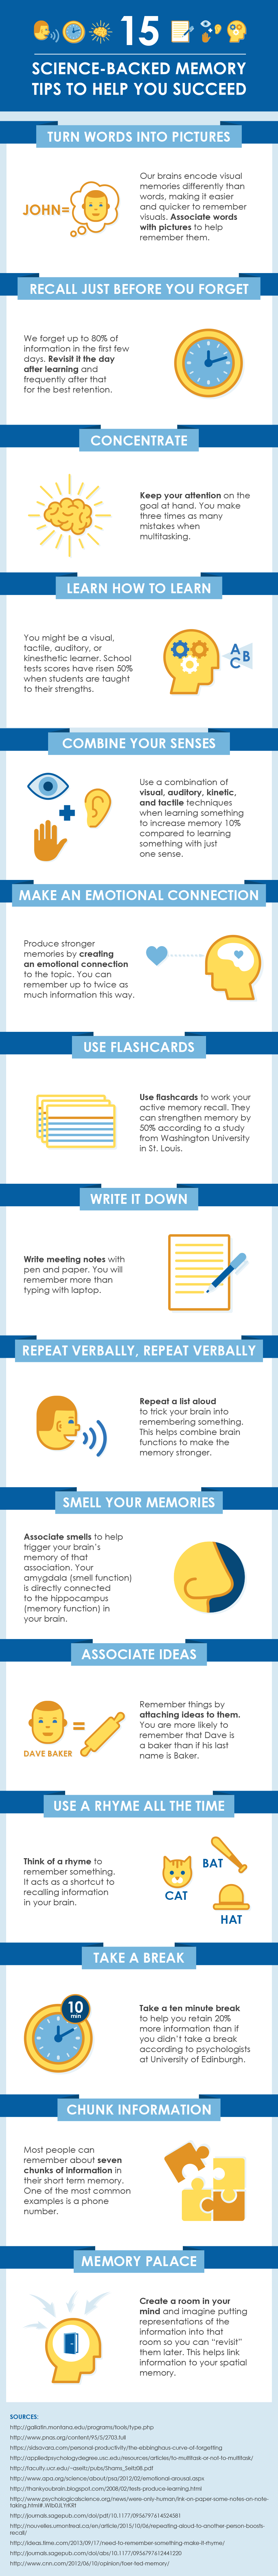 15 Science-Backed Memory Tips Infographic